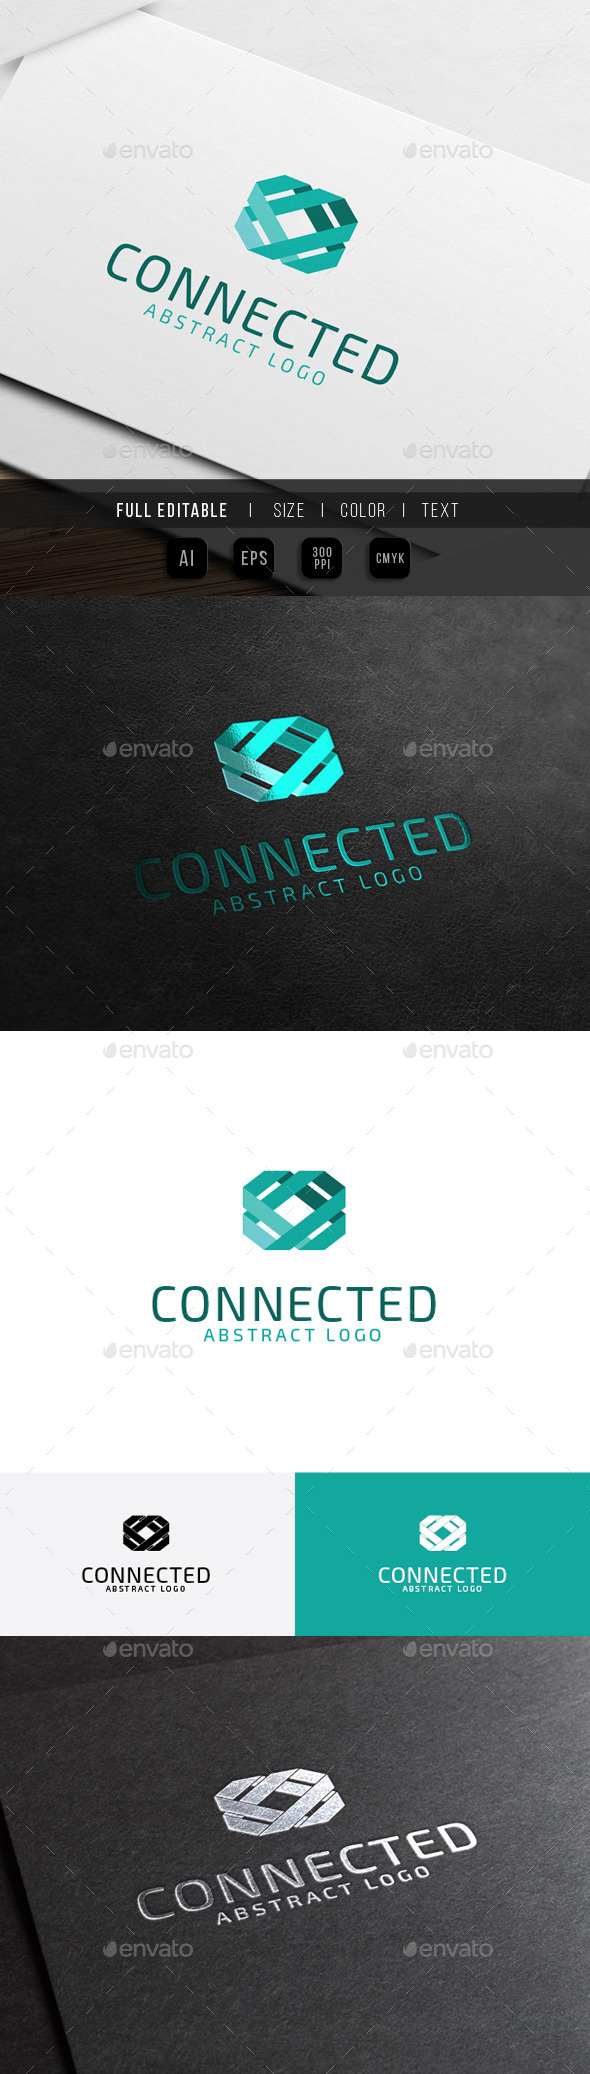 Abstract Connect - Link Technology